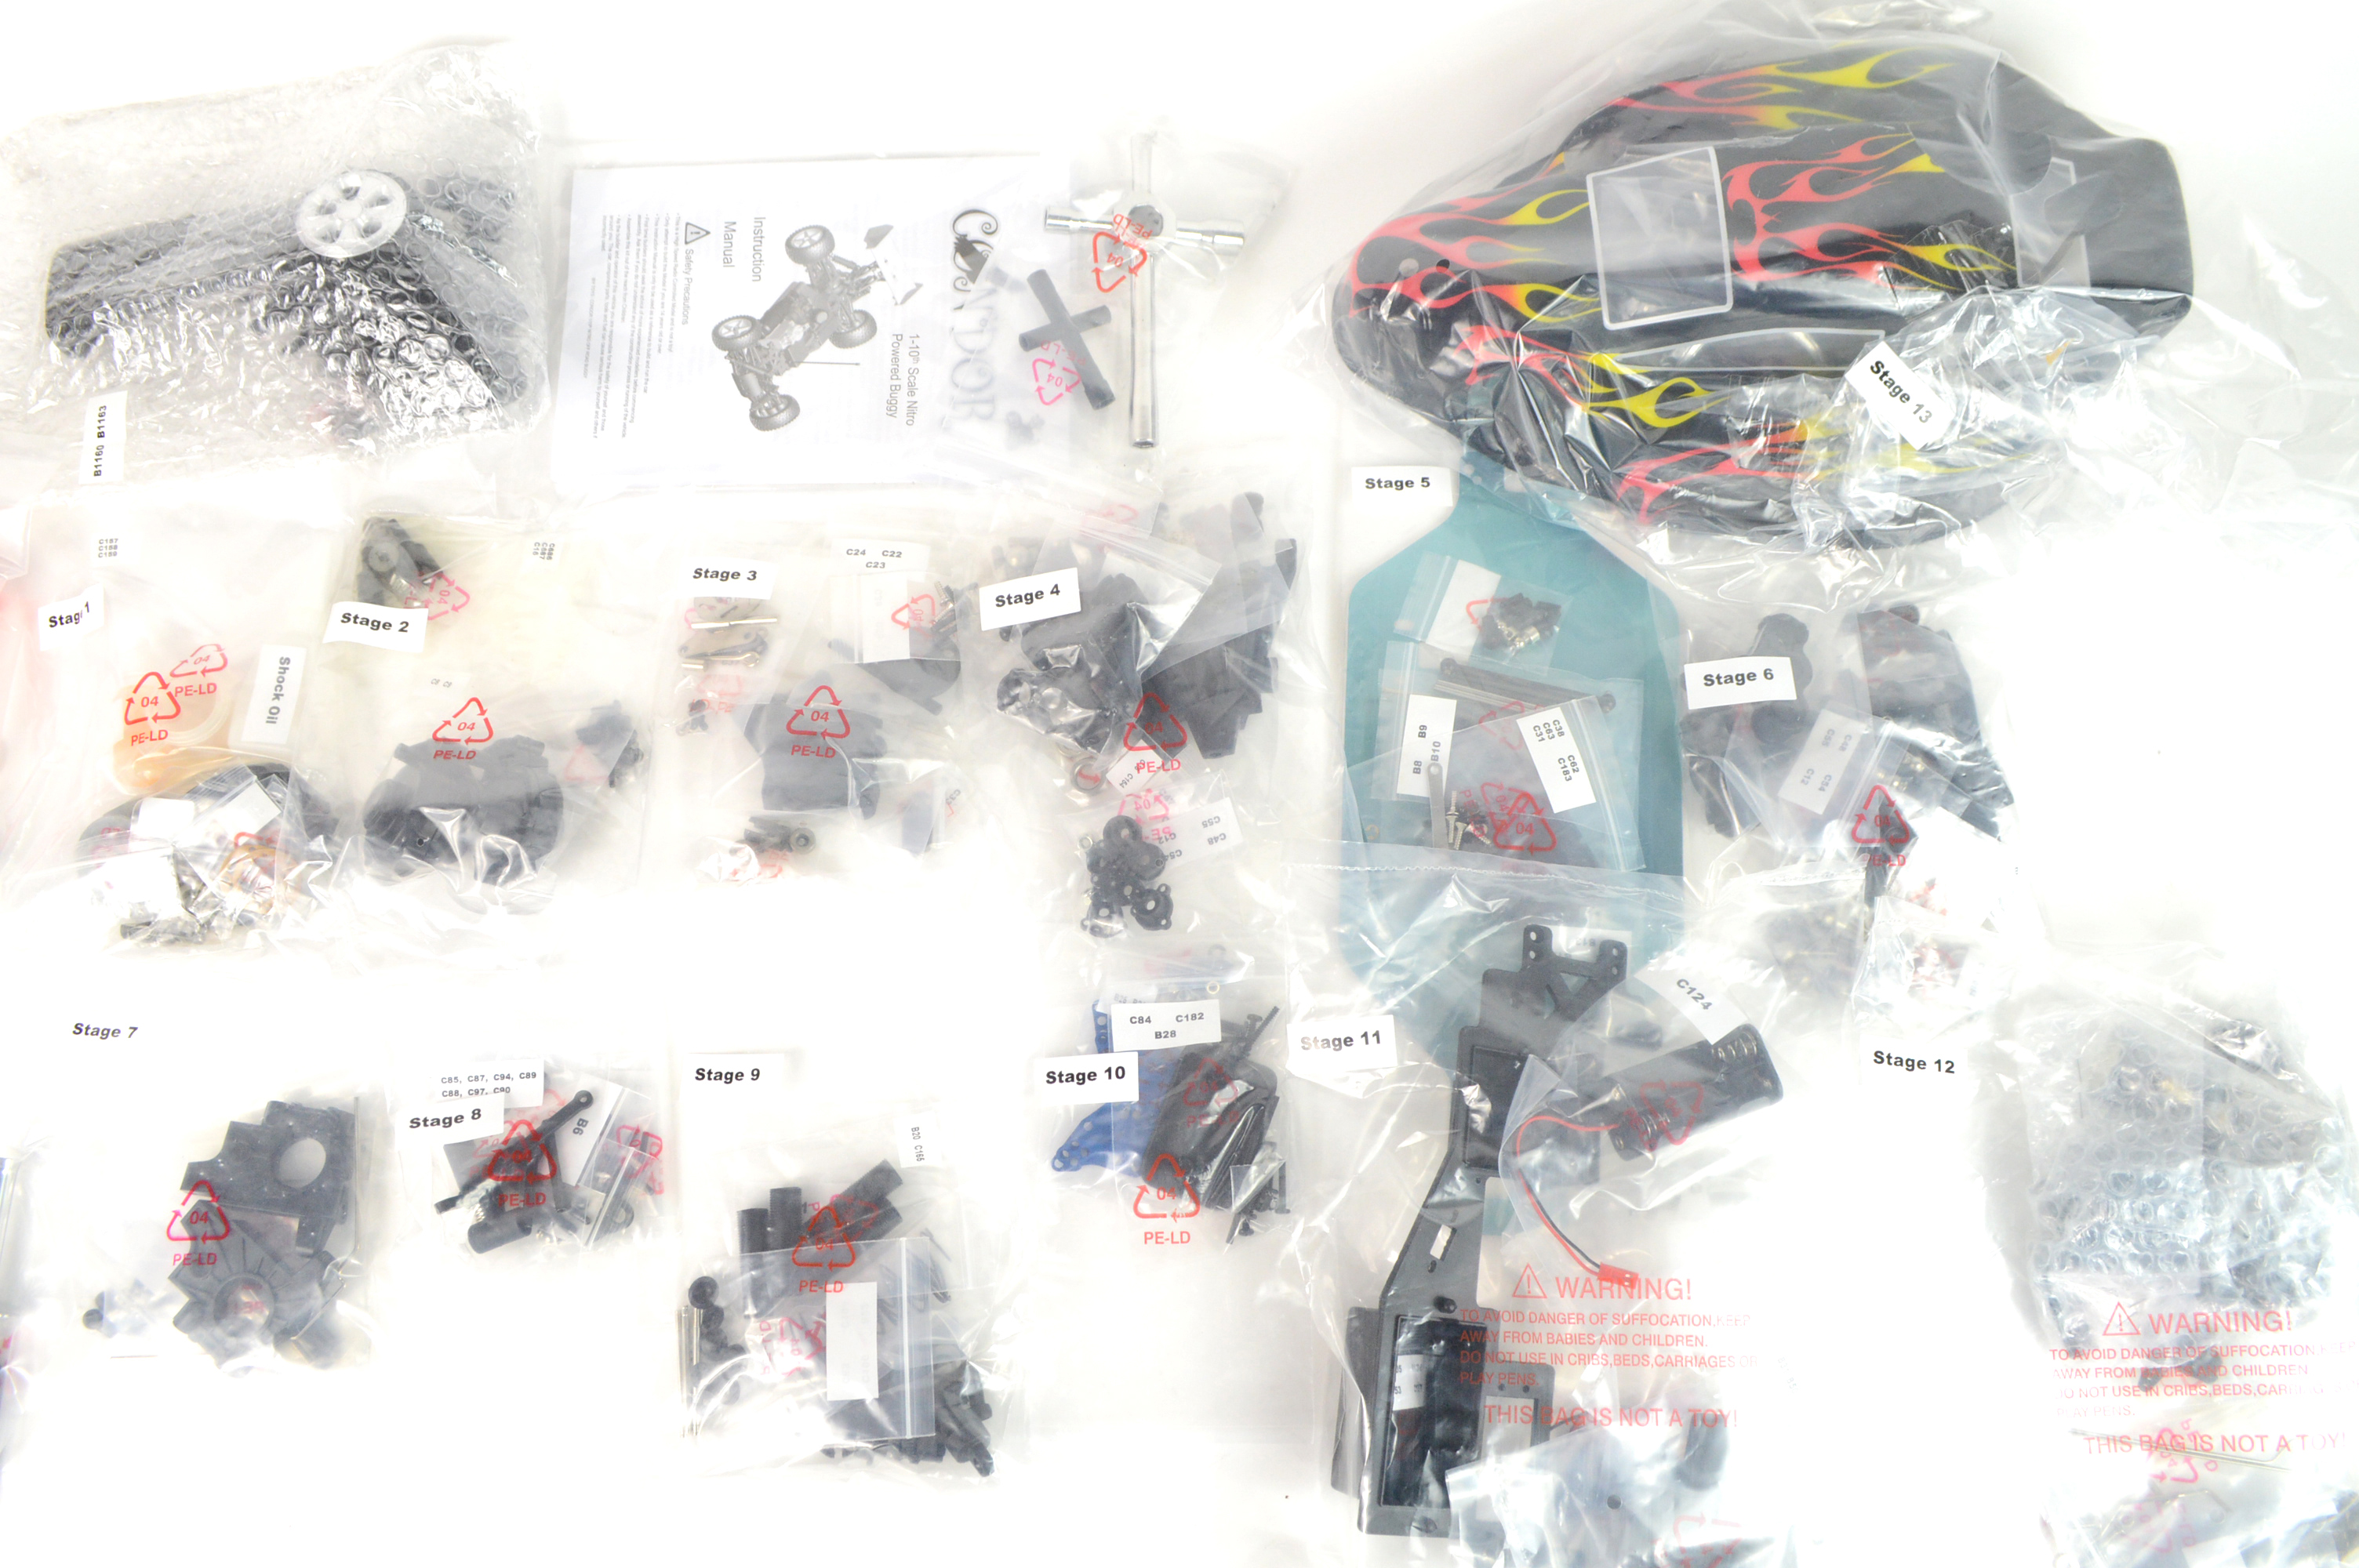 All bagged parts